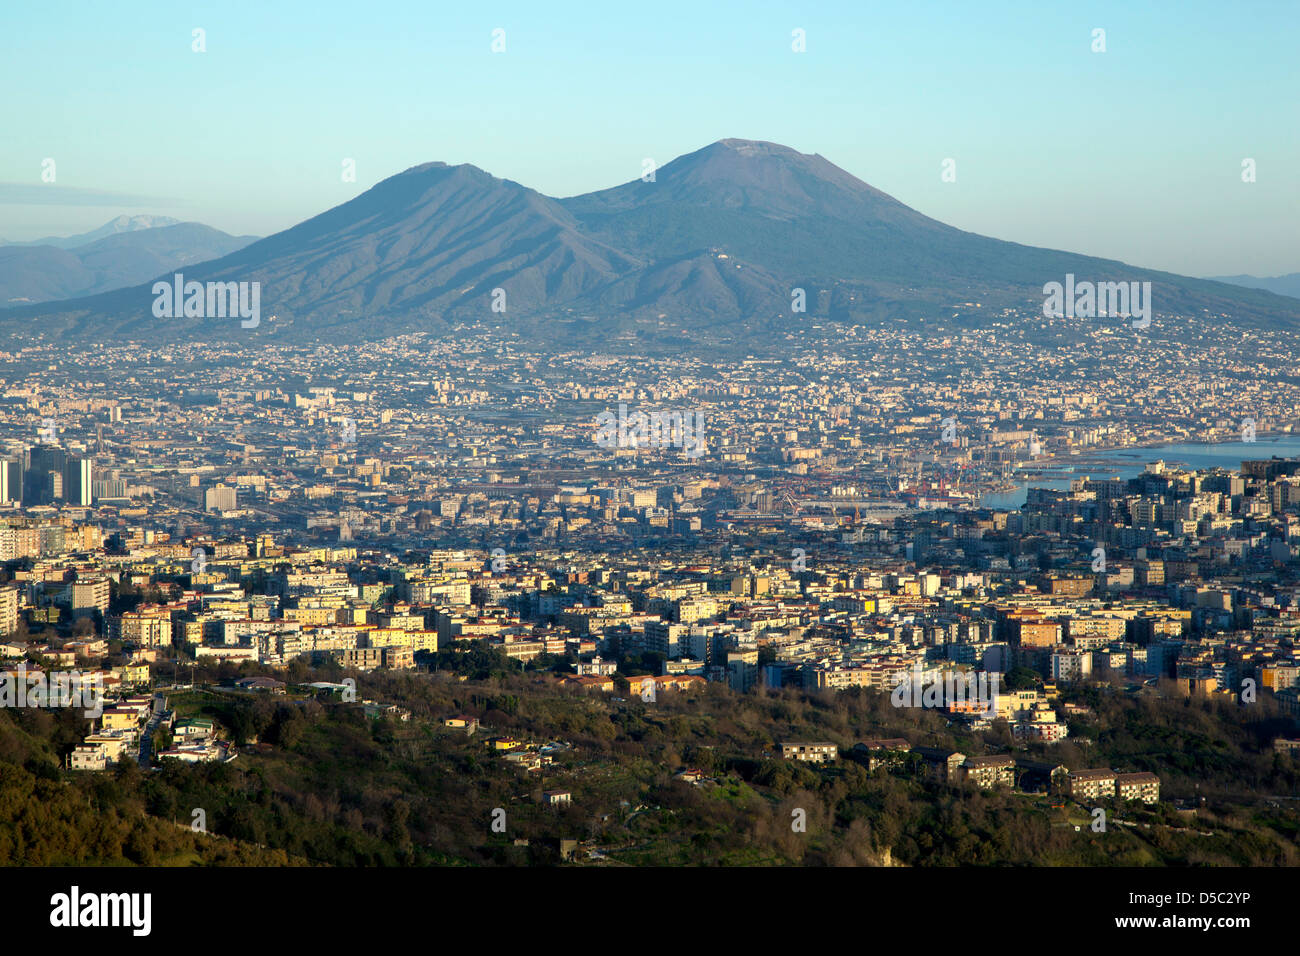 Overview of Naples and Vesuvius - Stock Image